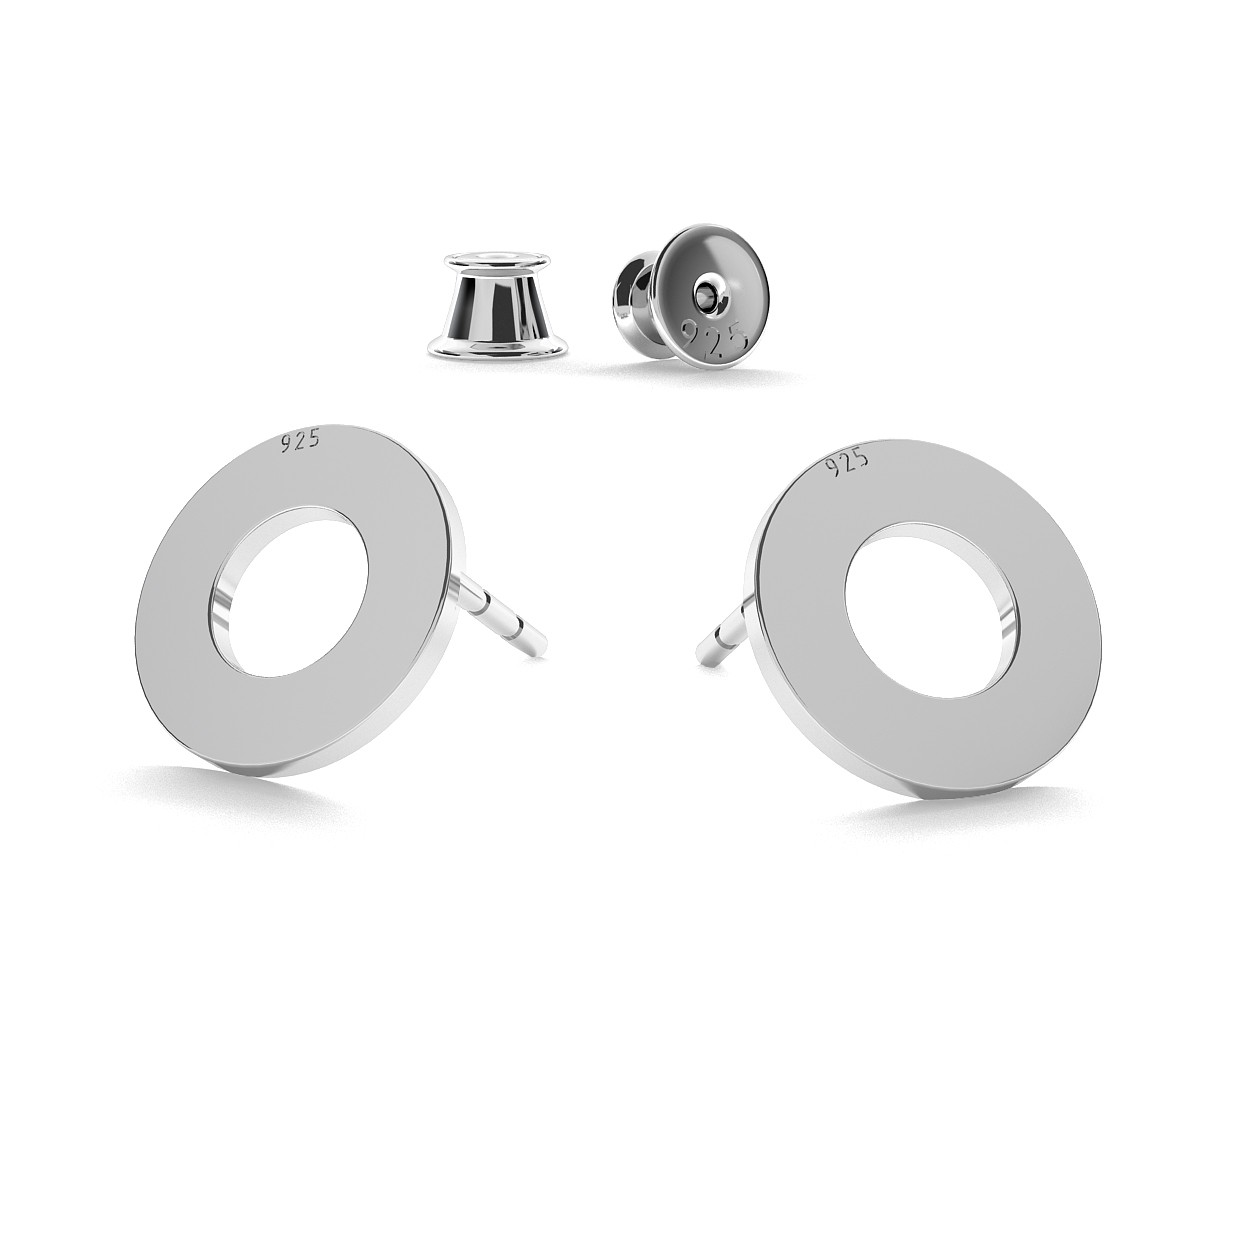 ROUND POST EARRINGS WITH ENGRAVAVING